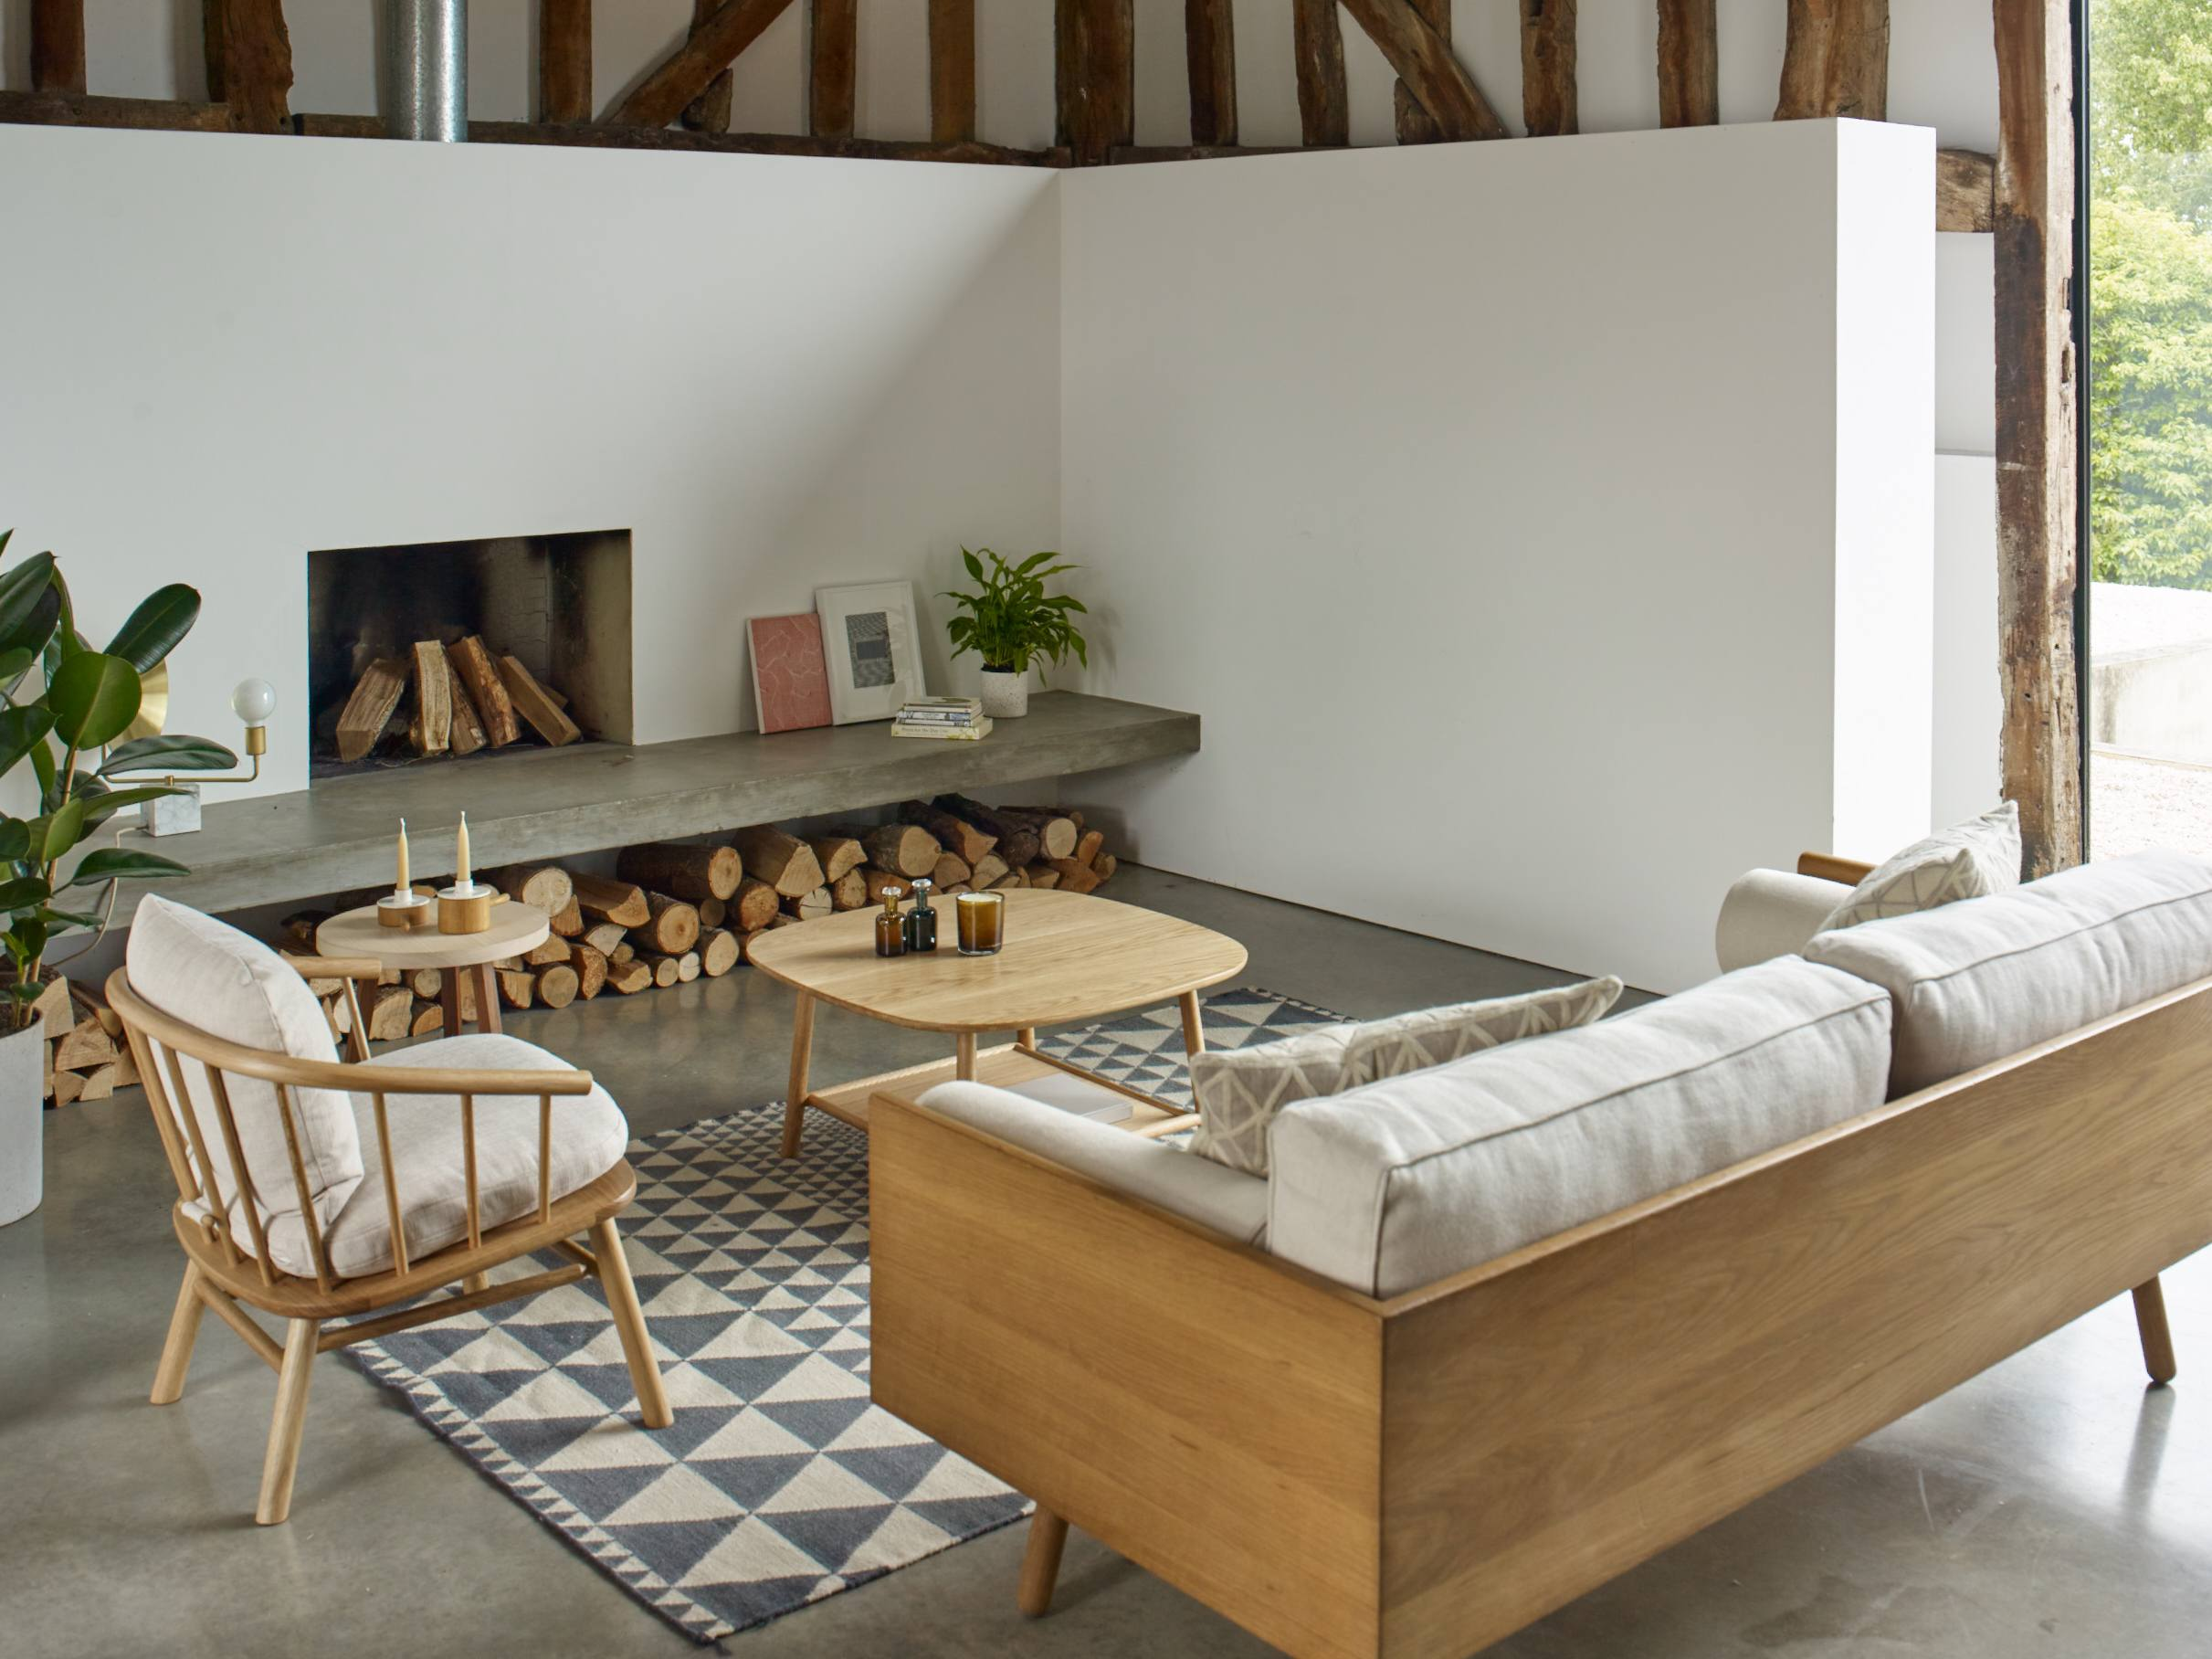 U201cThe Design Of The Hardy Family Picks Up Where It Left Off From The  Original Hardy Chair, Creating A Collection Of Furniture That Imbues  Quality And ...